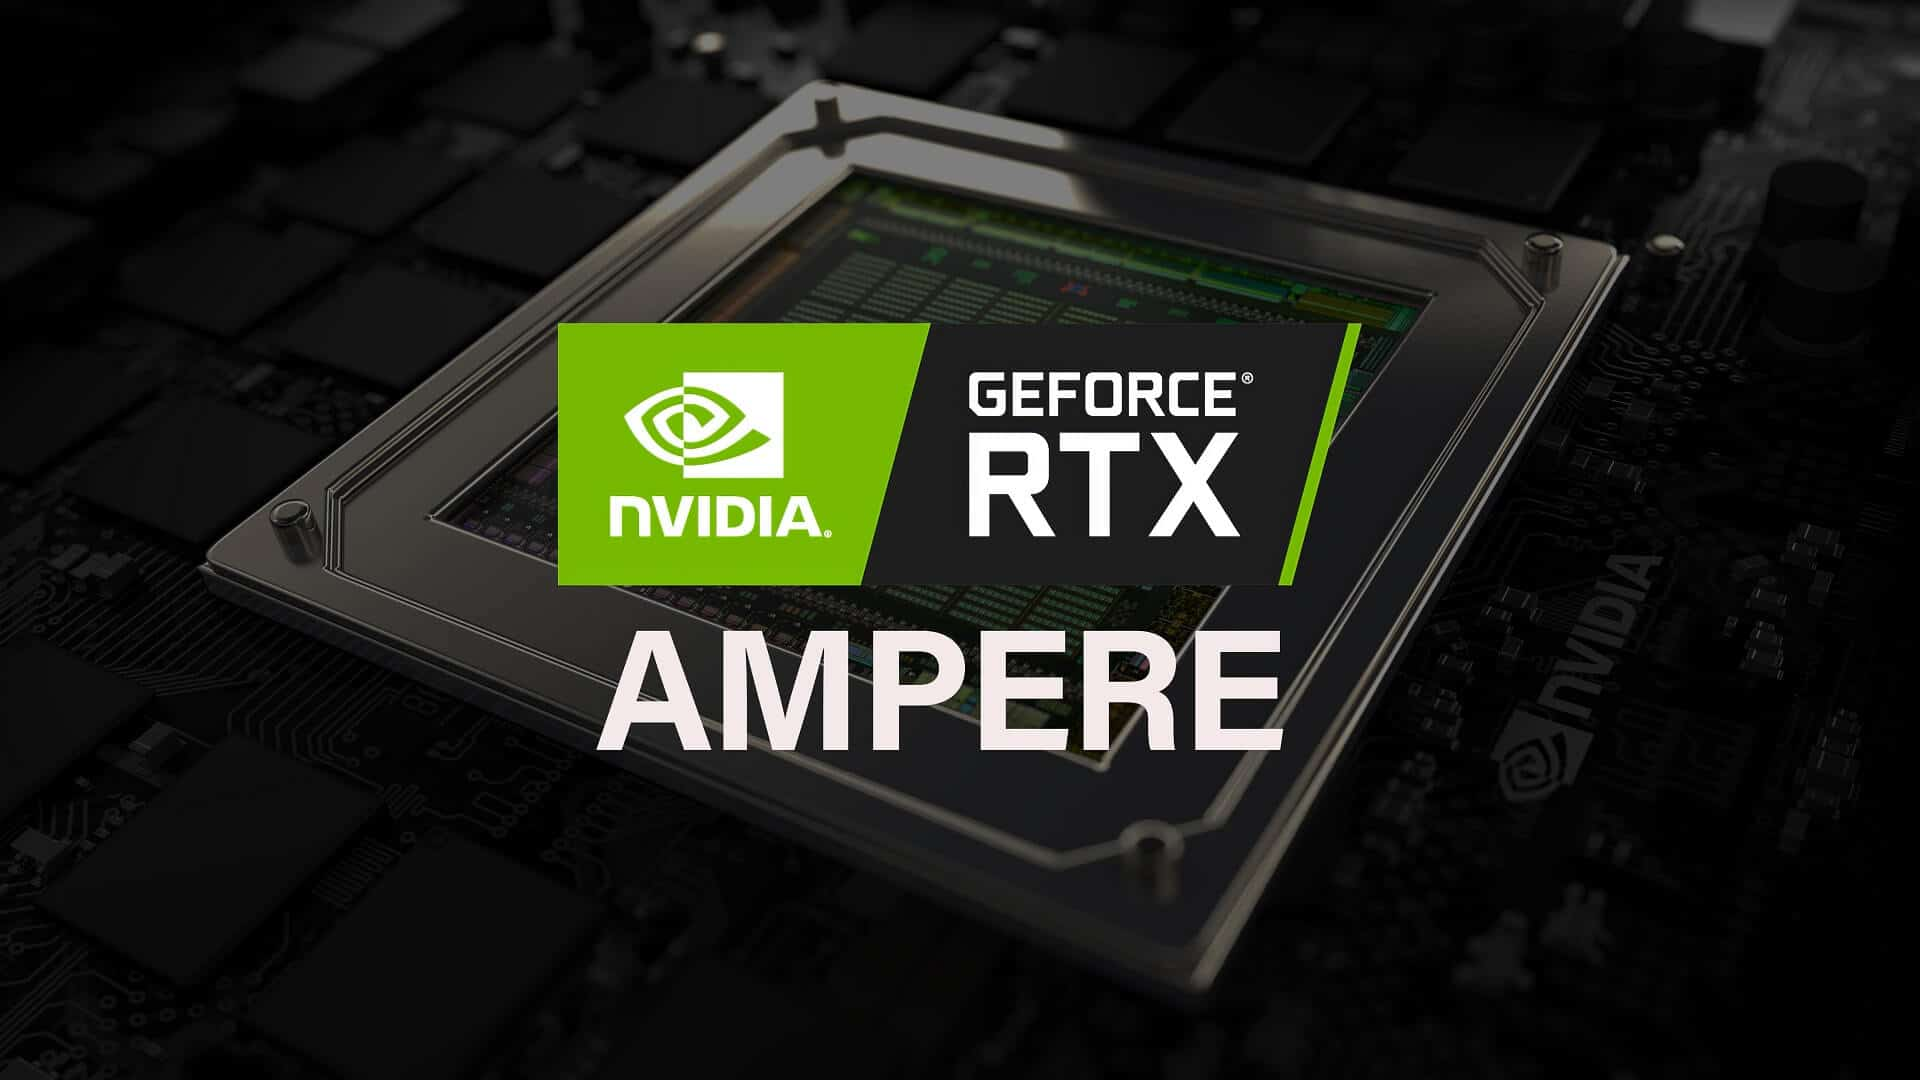 Nvidia Ampere Architecture: What to Expect? - Tech Centurion